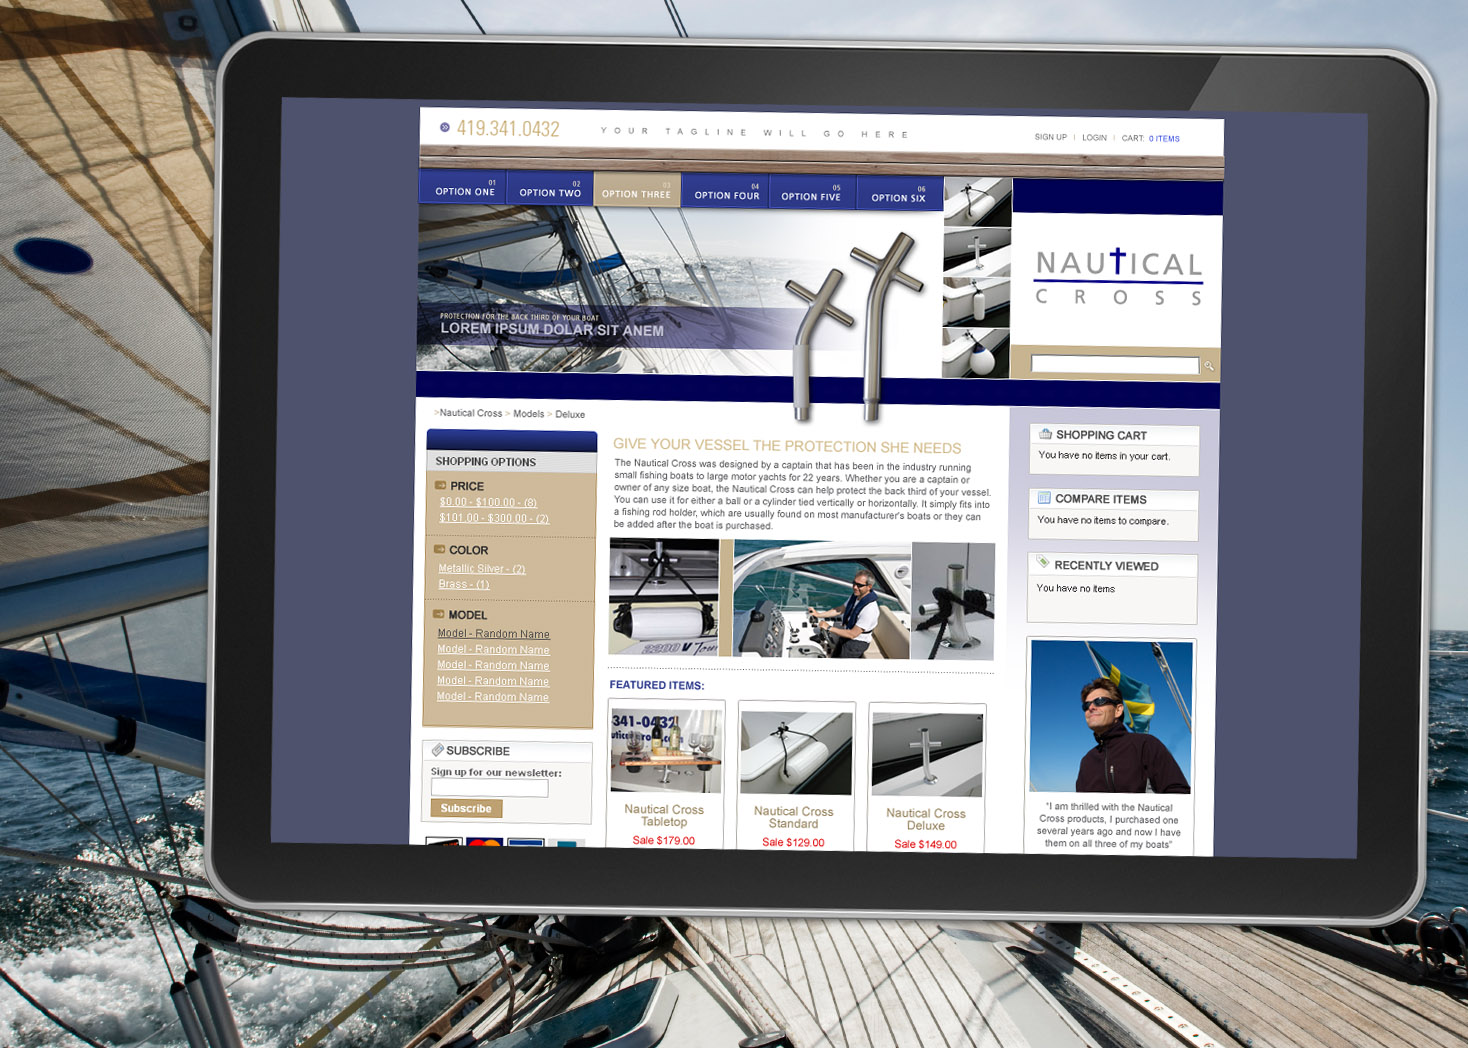 Nautical Cross eCommerce Website Design - Lehman Design